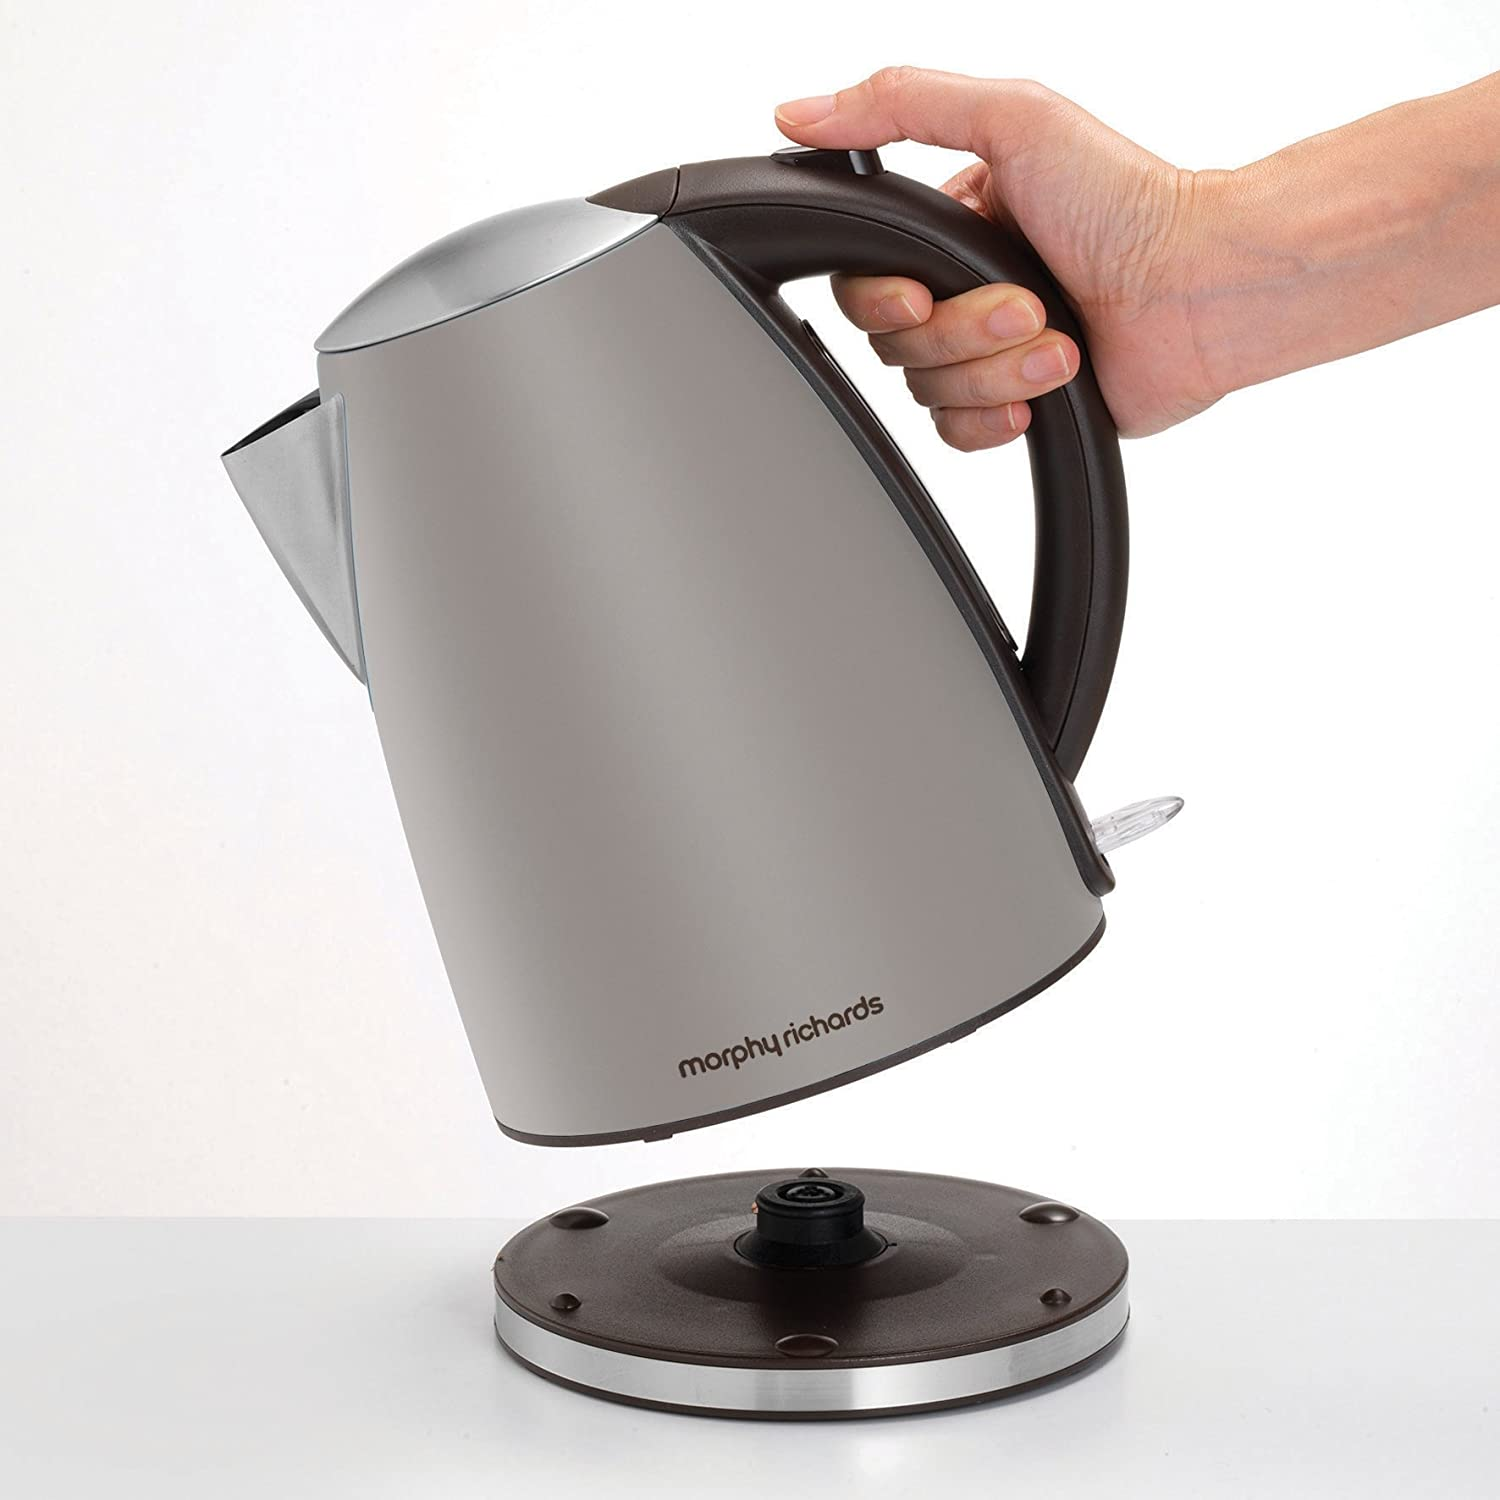 5l accents range only electricals co uk small kitchen appliances - Morphy Richards 103004 Accents Jug Kettle Pebble Amazon Co Uk Kitchen Home